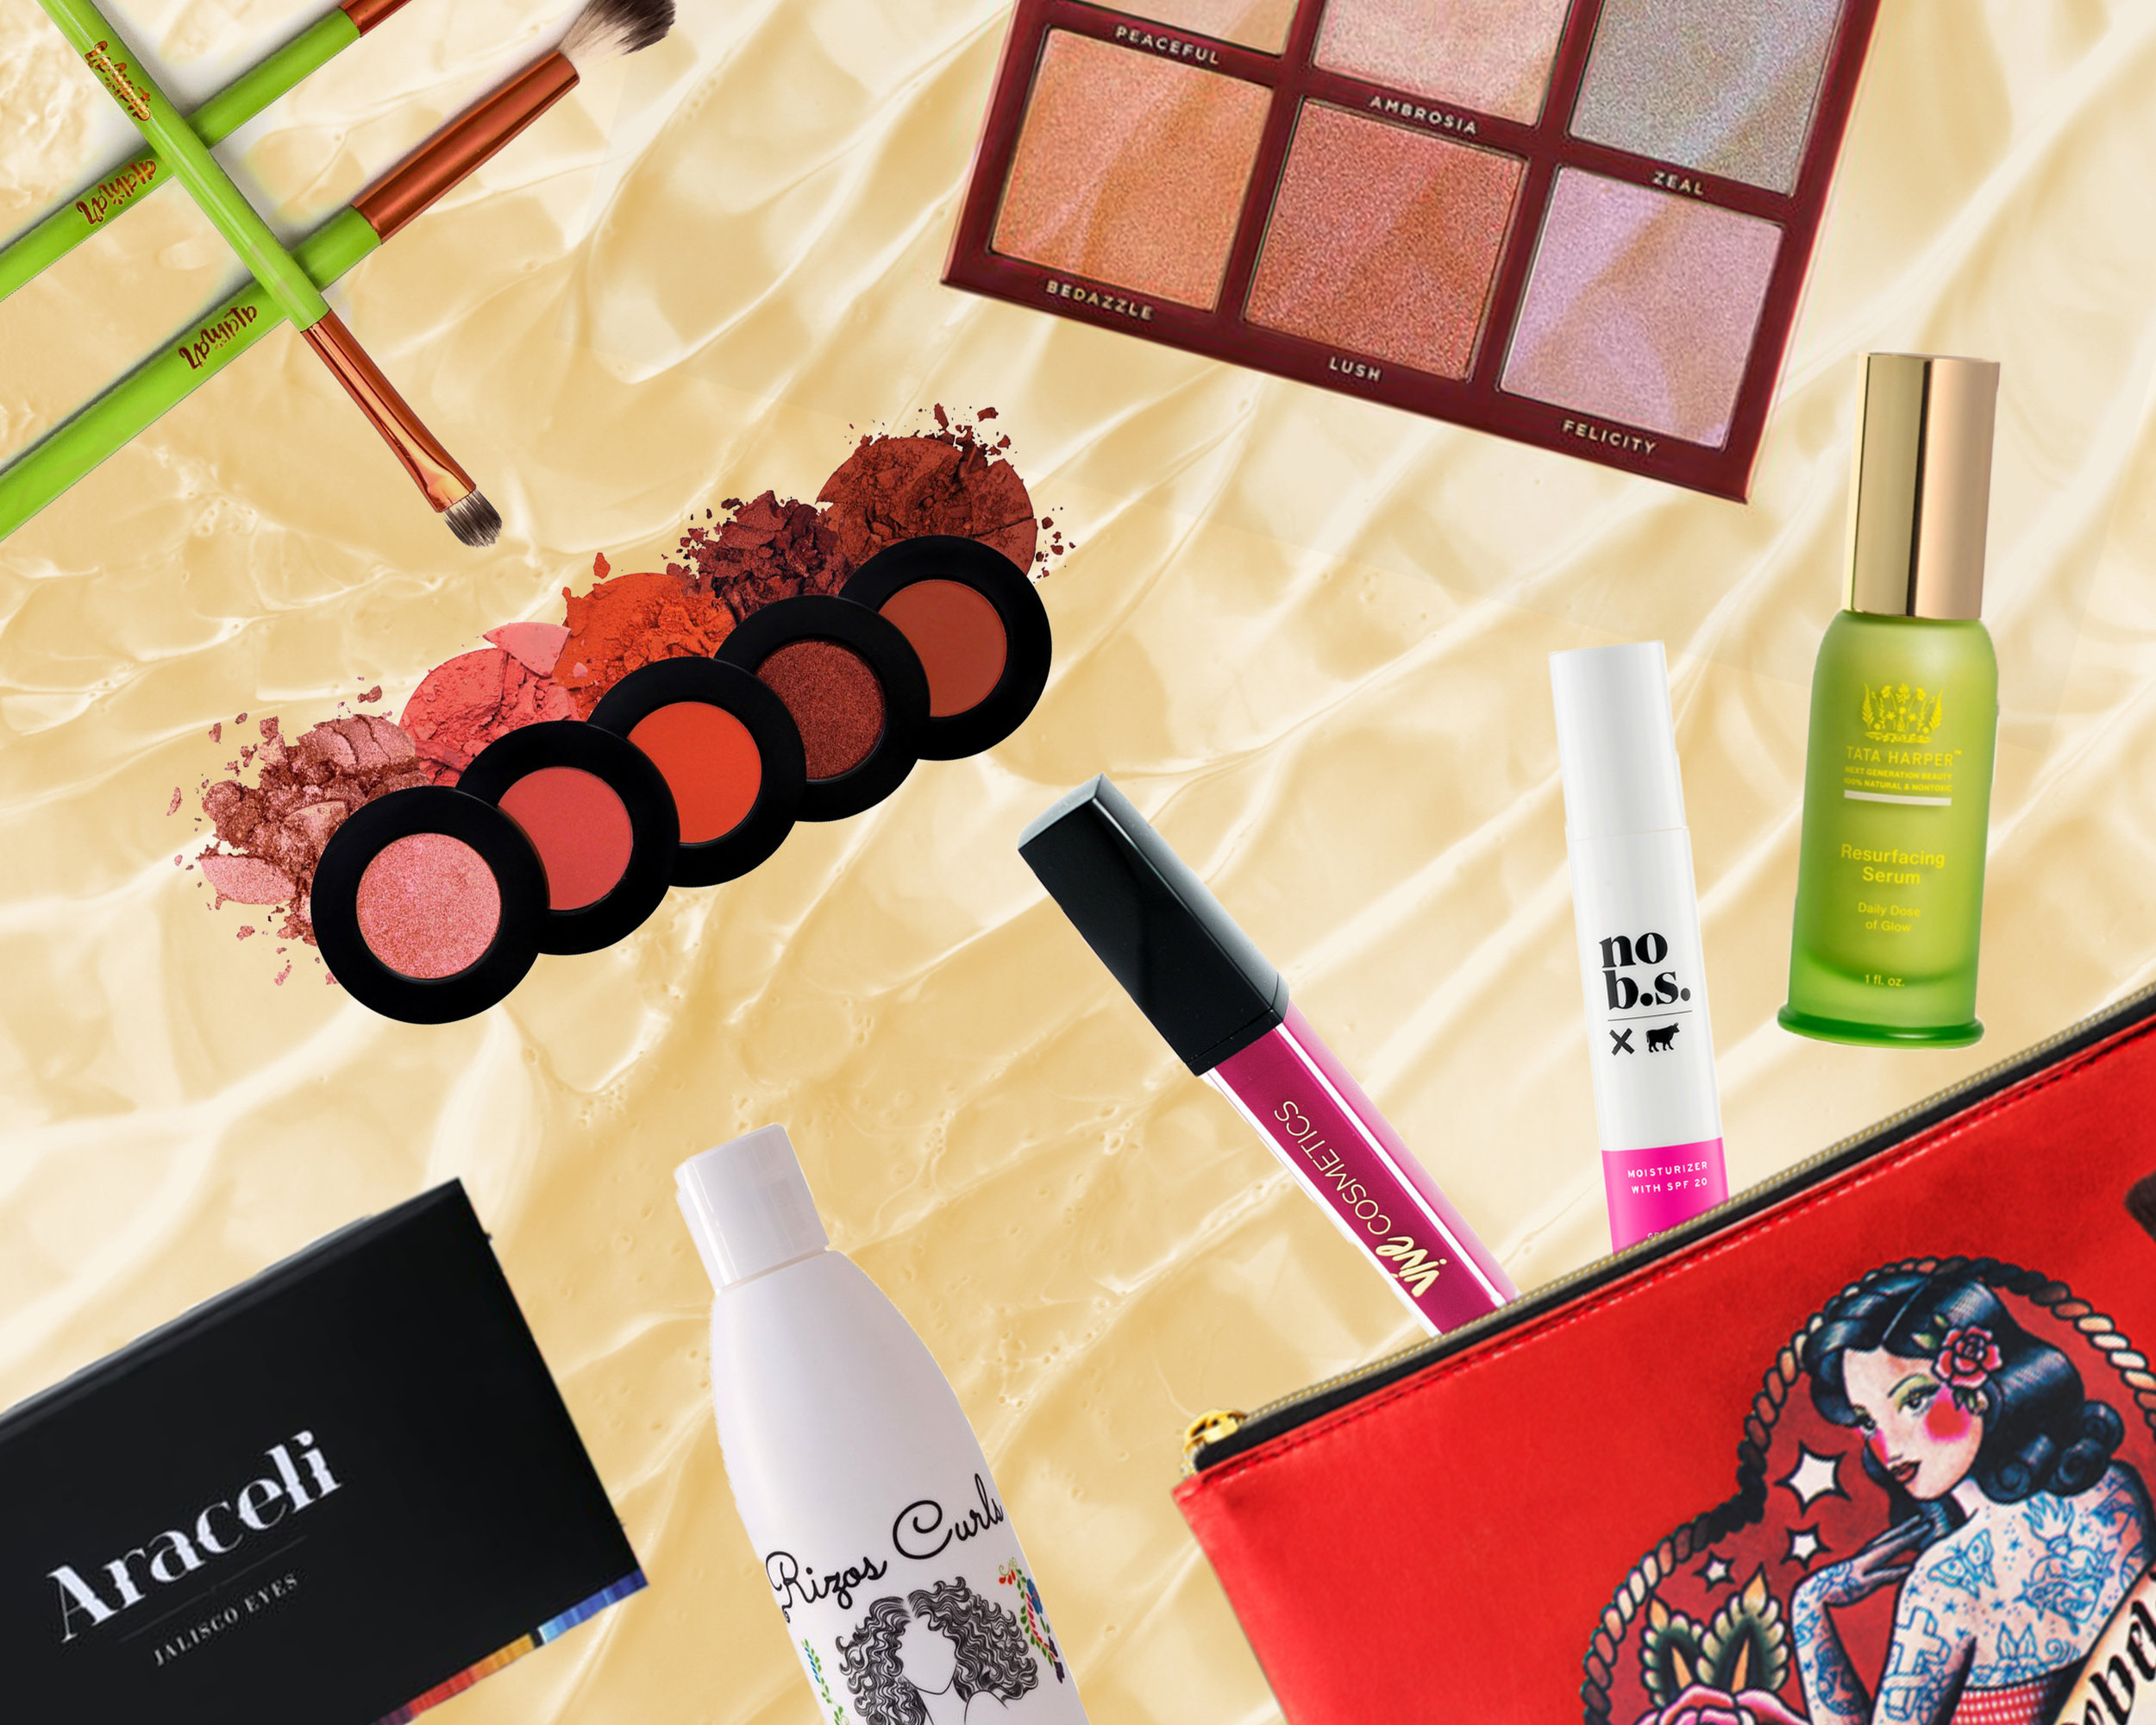 wide-beauty-to-shop-this-holiday-season.jpg